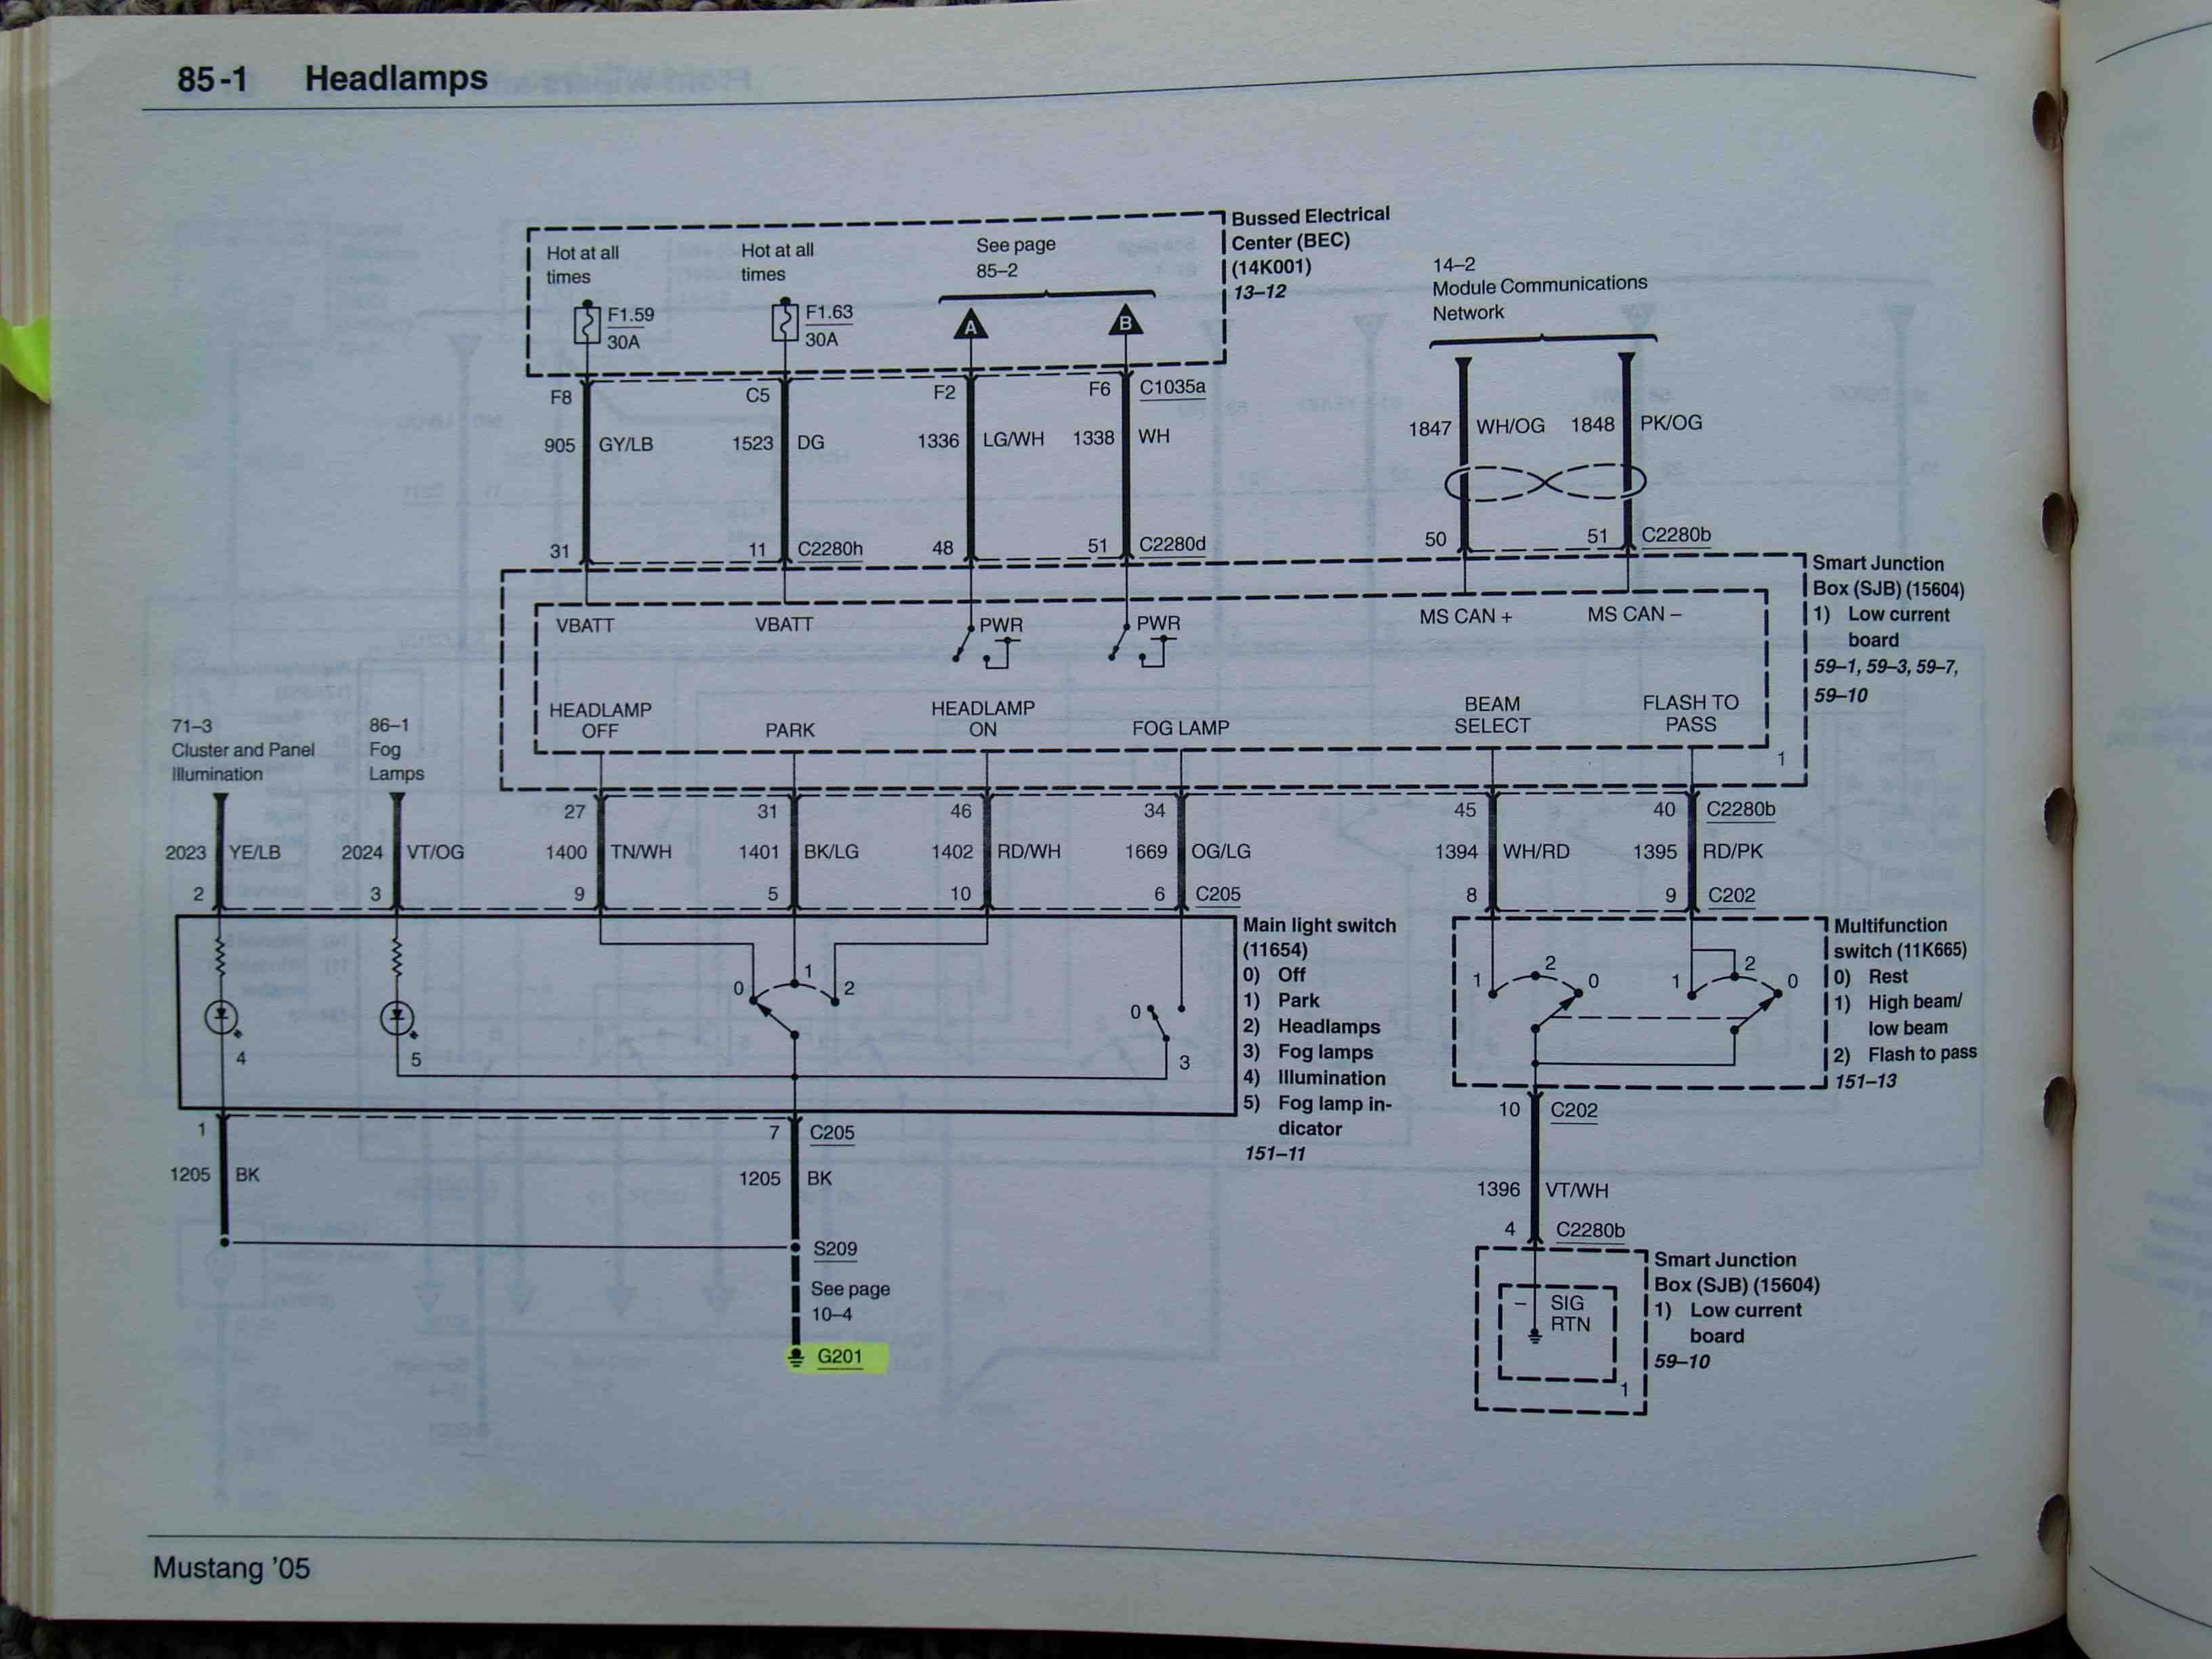 99330d1274386669 2008 gt headlight wiring diagram p5206403 1 s197 wiring diagram s175 wiring diagram \u2022 wiring diagrams j aprilaire wiring diagrams for 8466 thermostat at creativeand.co